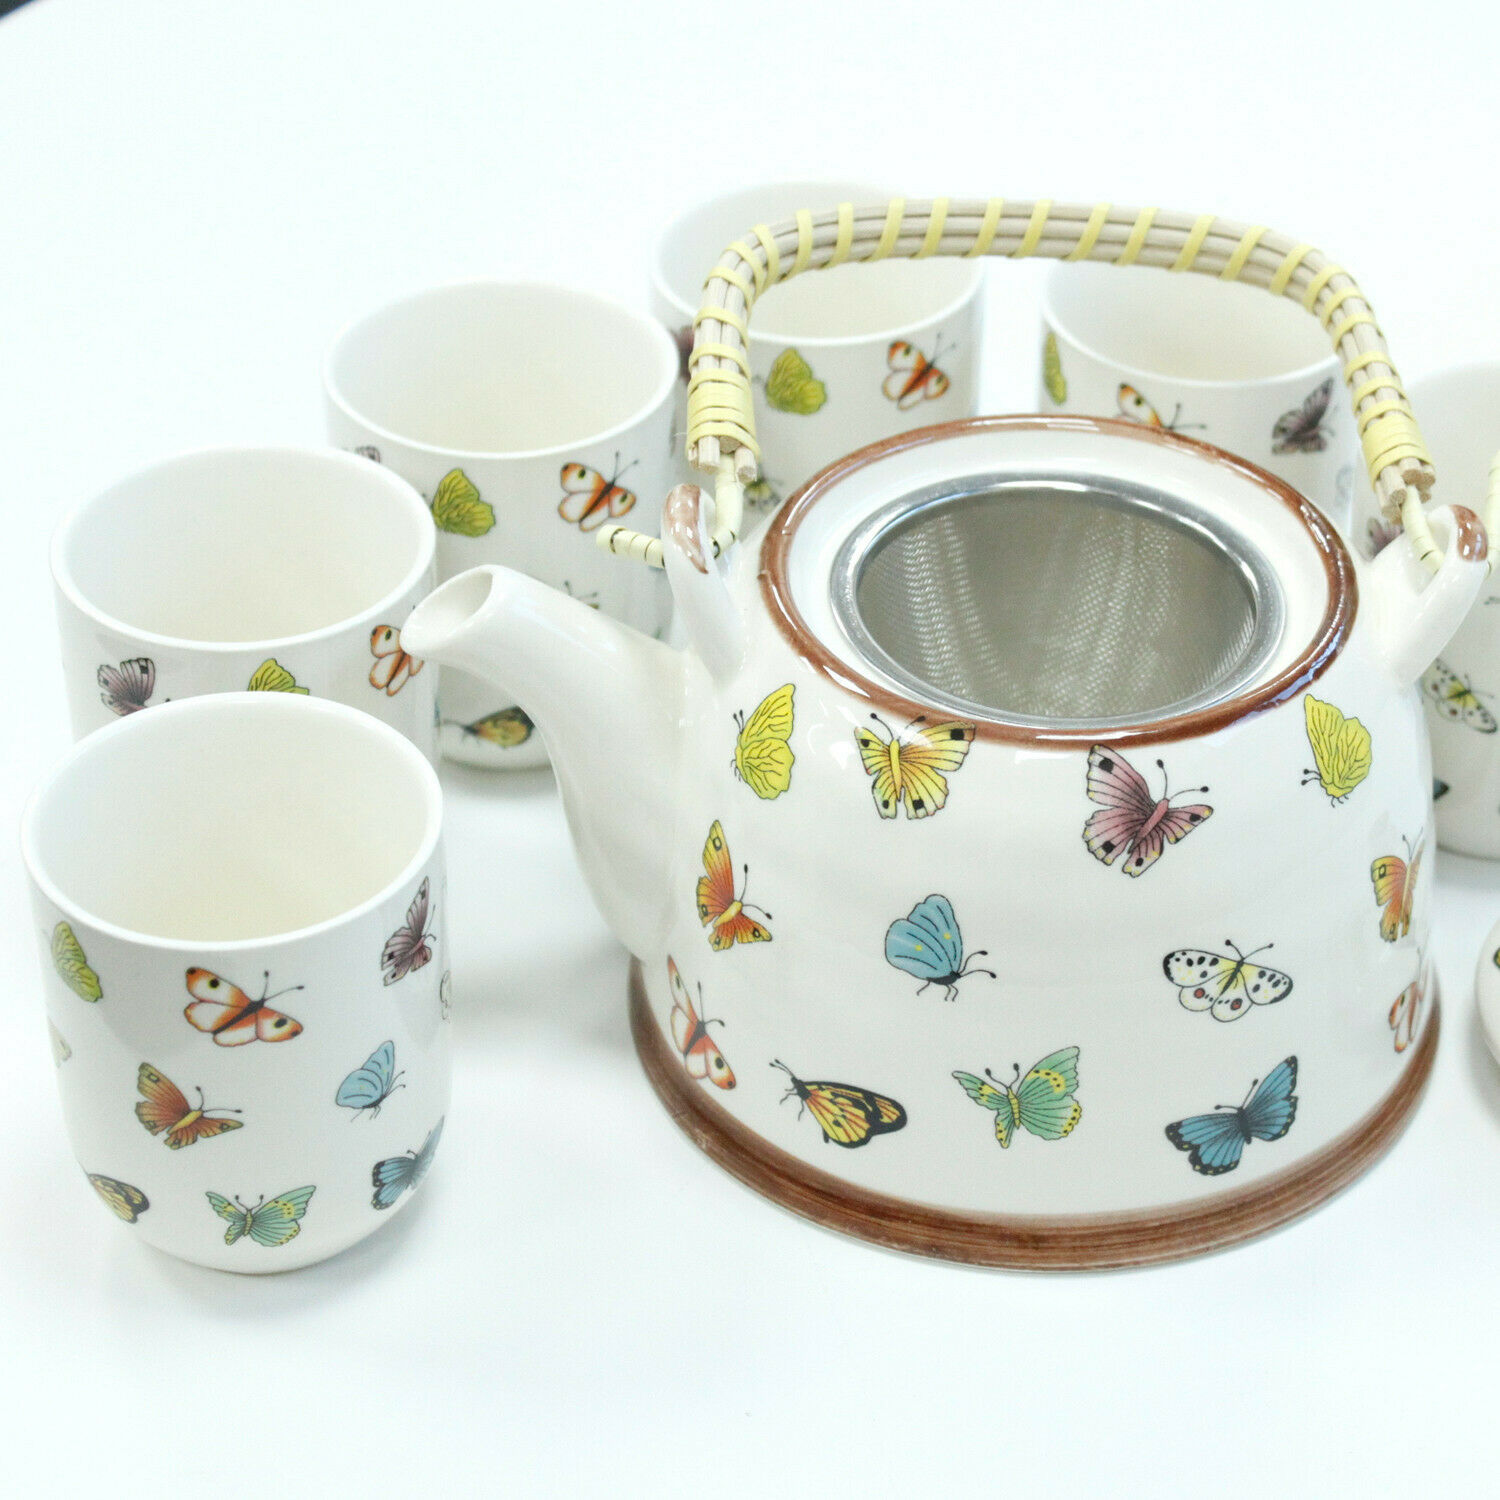 Decorative Retro Style Ceramic Herbal Teapots & 6 Matching Tea Cups Set New Gift